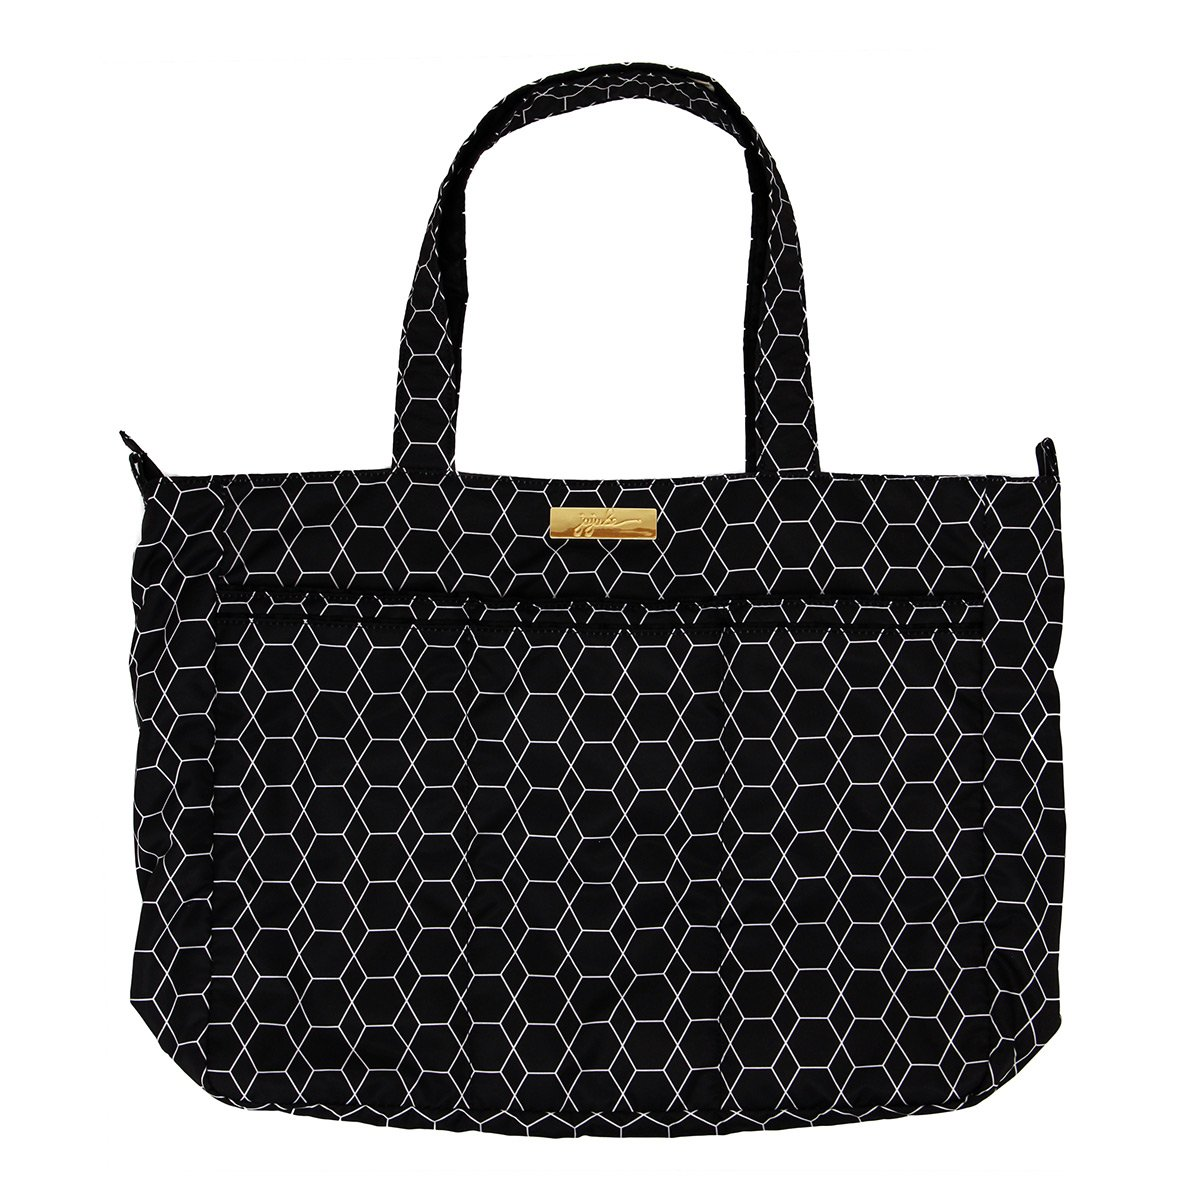 ju-ju-be LegacyコレクションSuper Be Zippered Tote Diaperバッグ、The Versailles B00V85295A The Countess The Countess